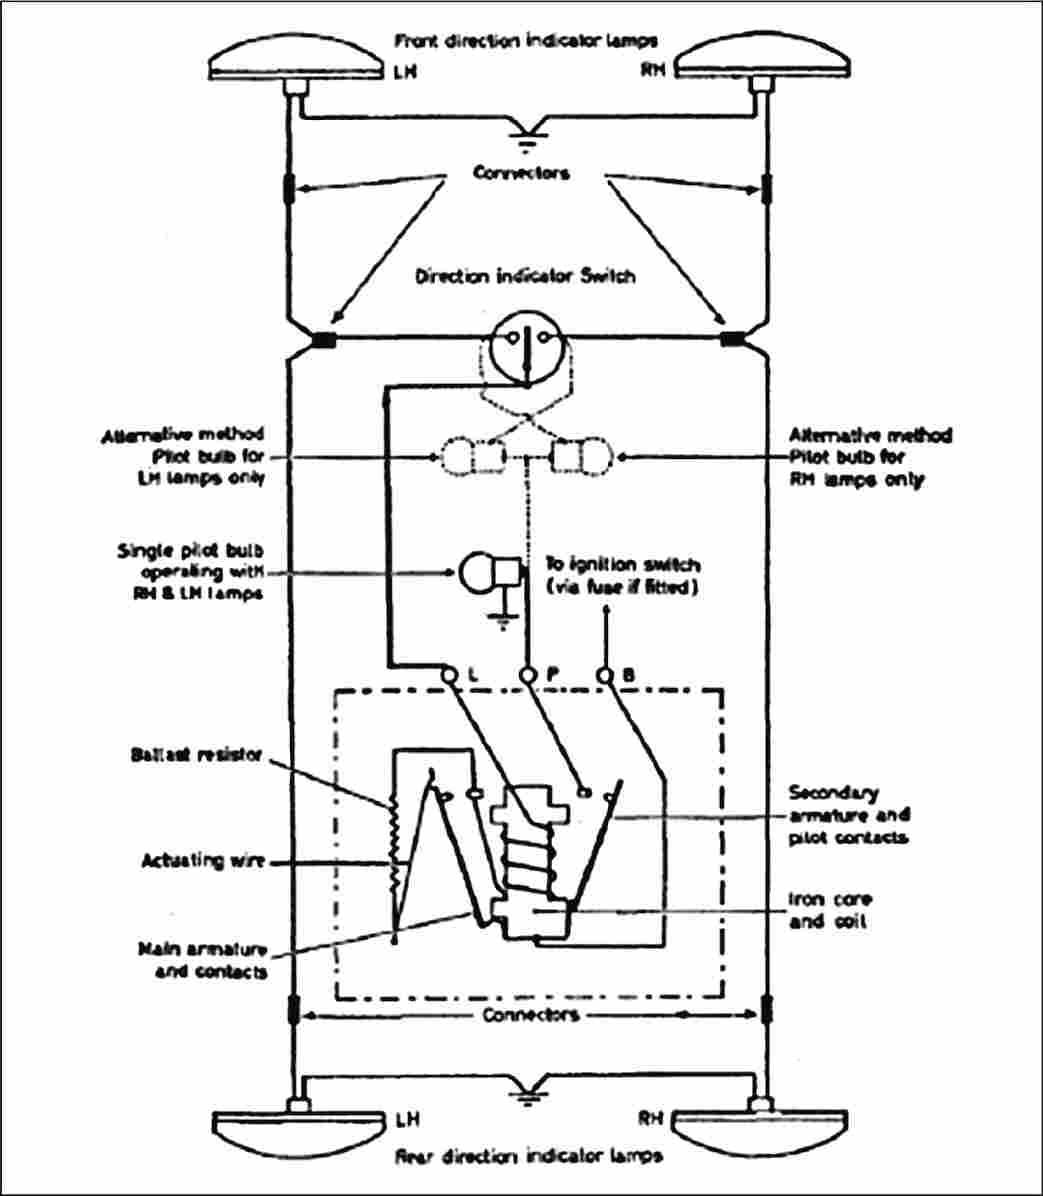 flasher wiring diagrams for units all indicators flashing! - the motorbike forum wiring diagrams for home #10